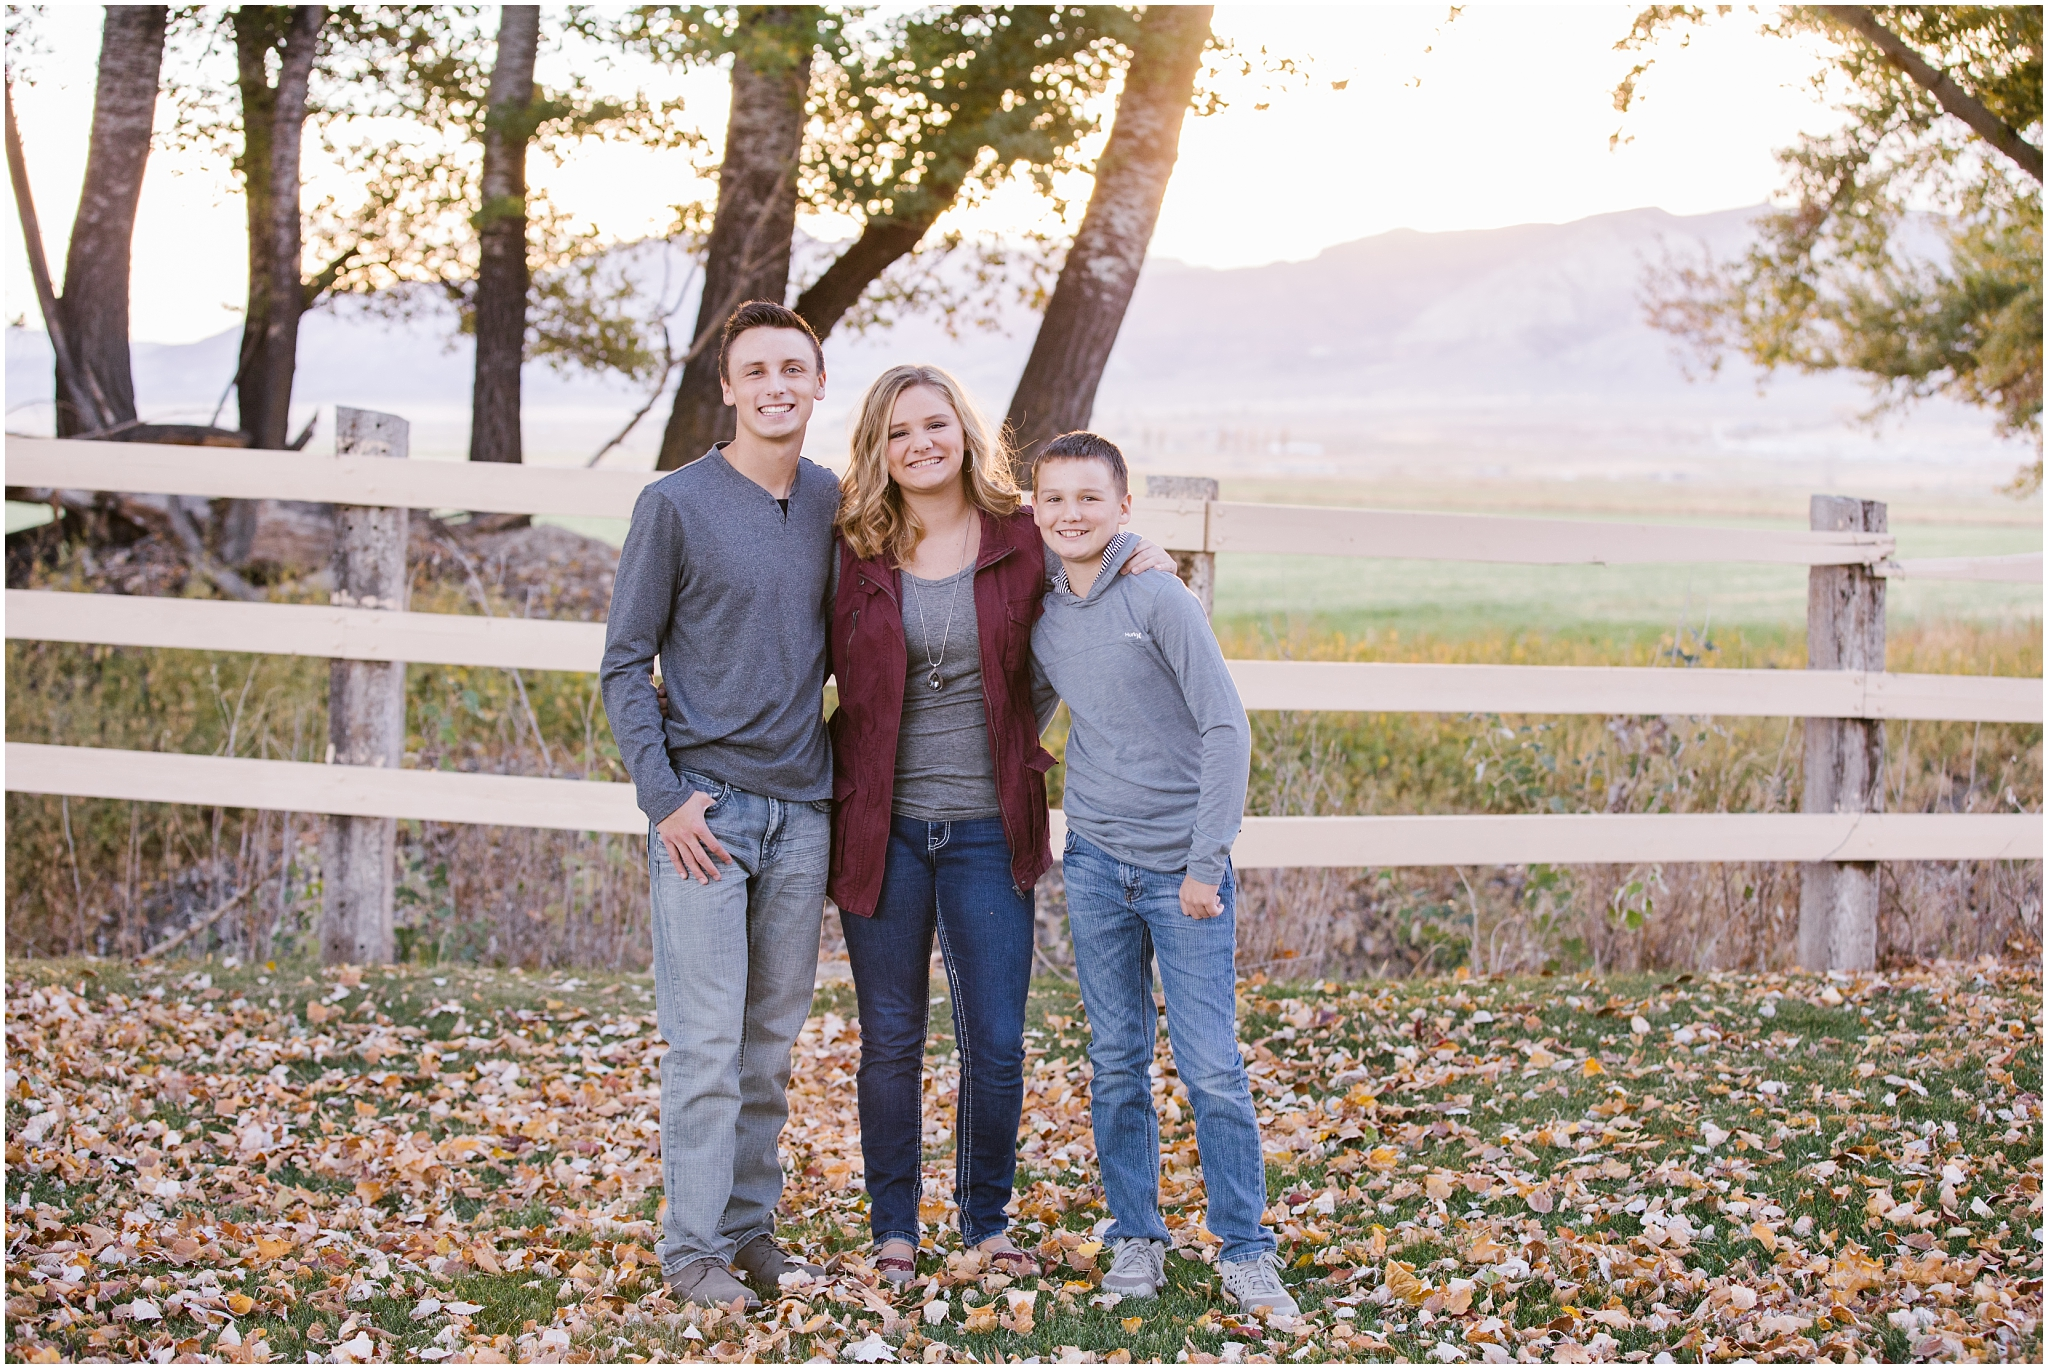 Fielding-53_Lizzie-B-Imagery-Utah-Family-Photographer-Central-Utah-Park-City-Salt-Lake-City.jpg